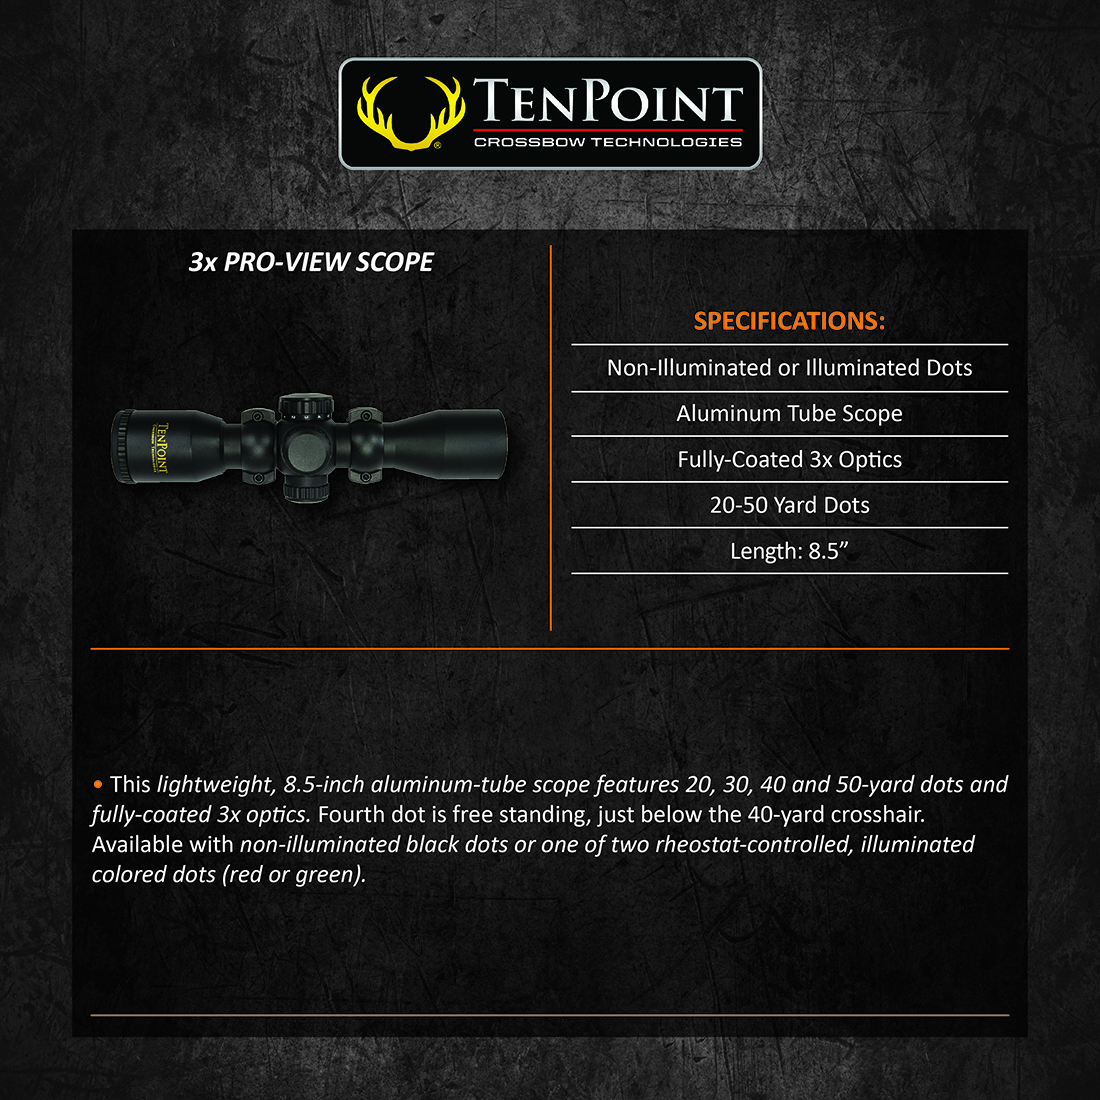 TenPoint_3x_ProView_Scope_Product_Description